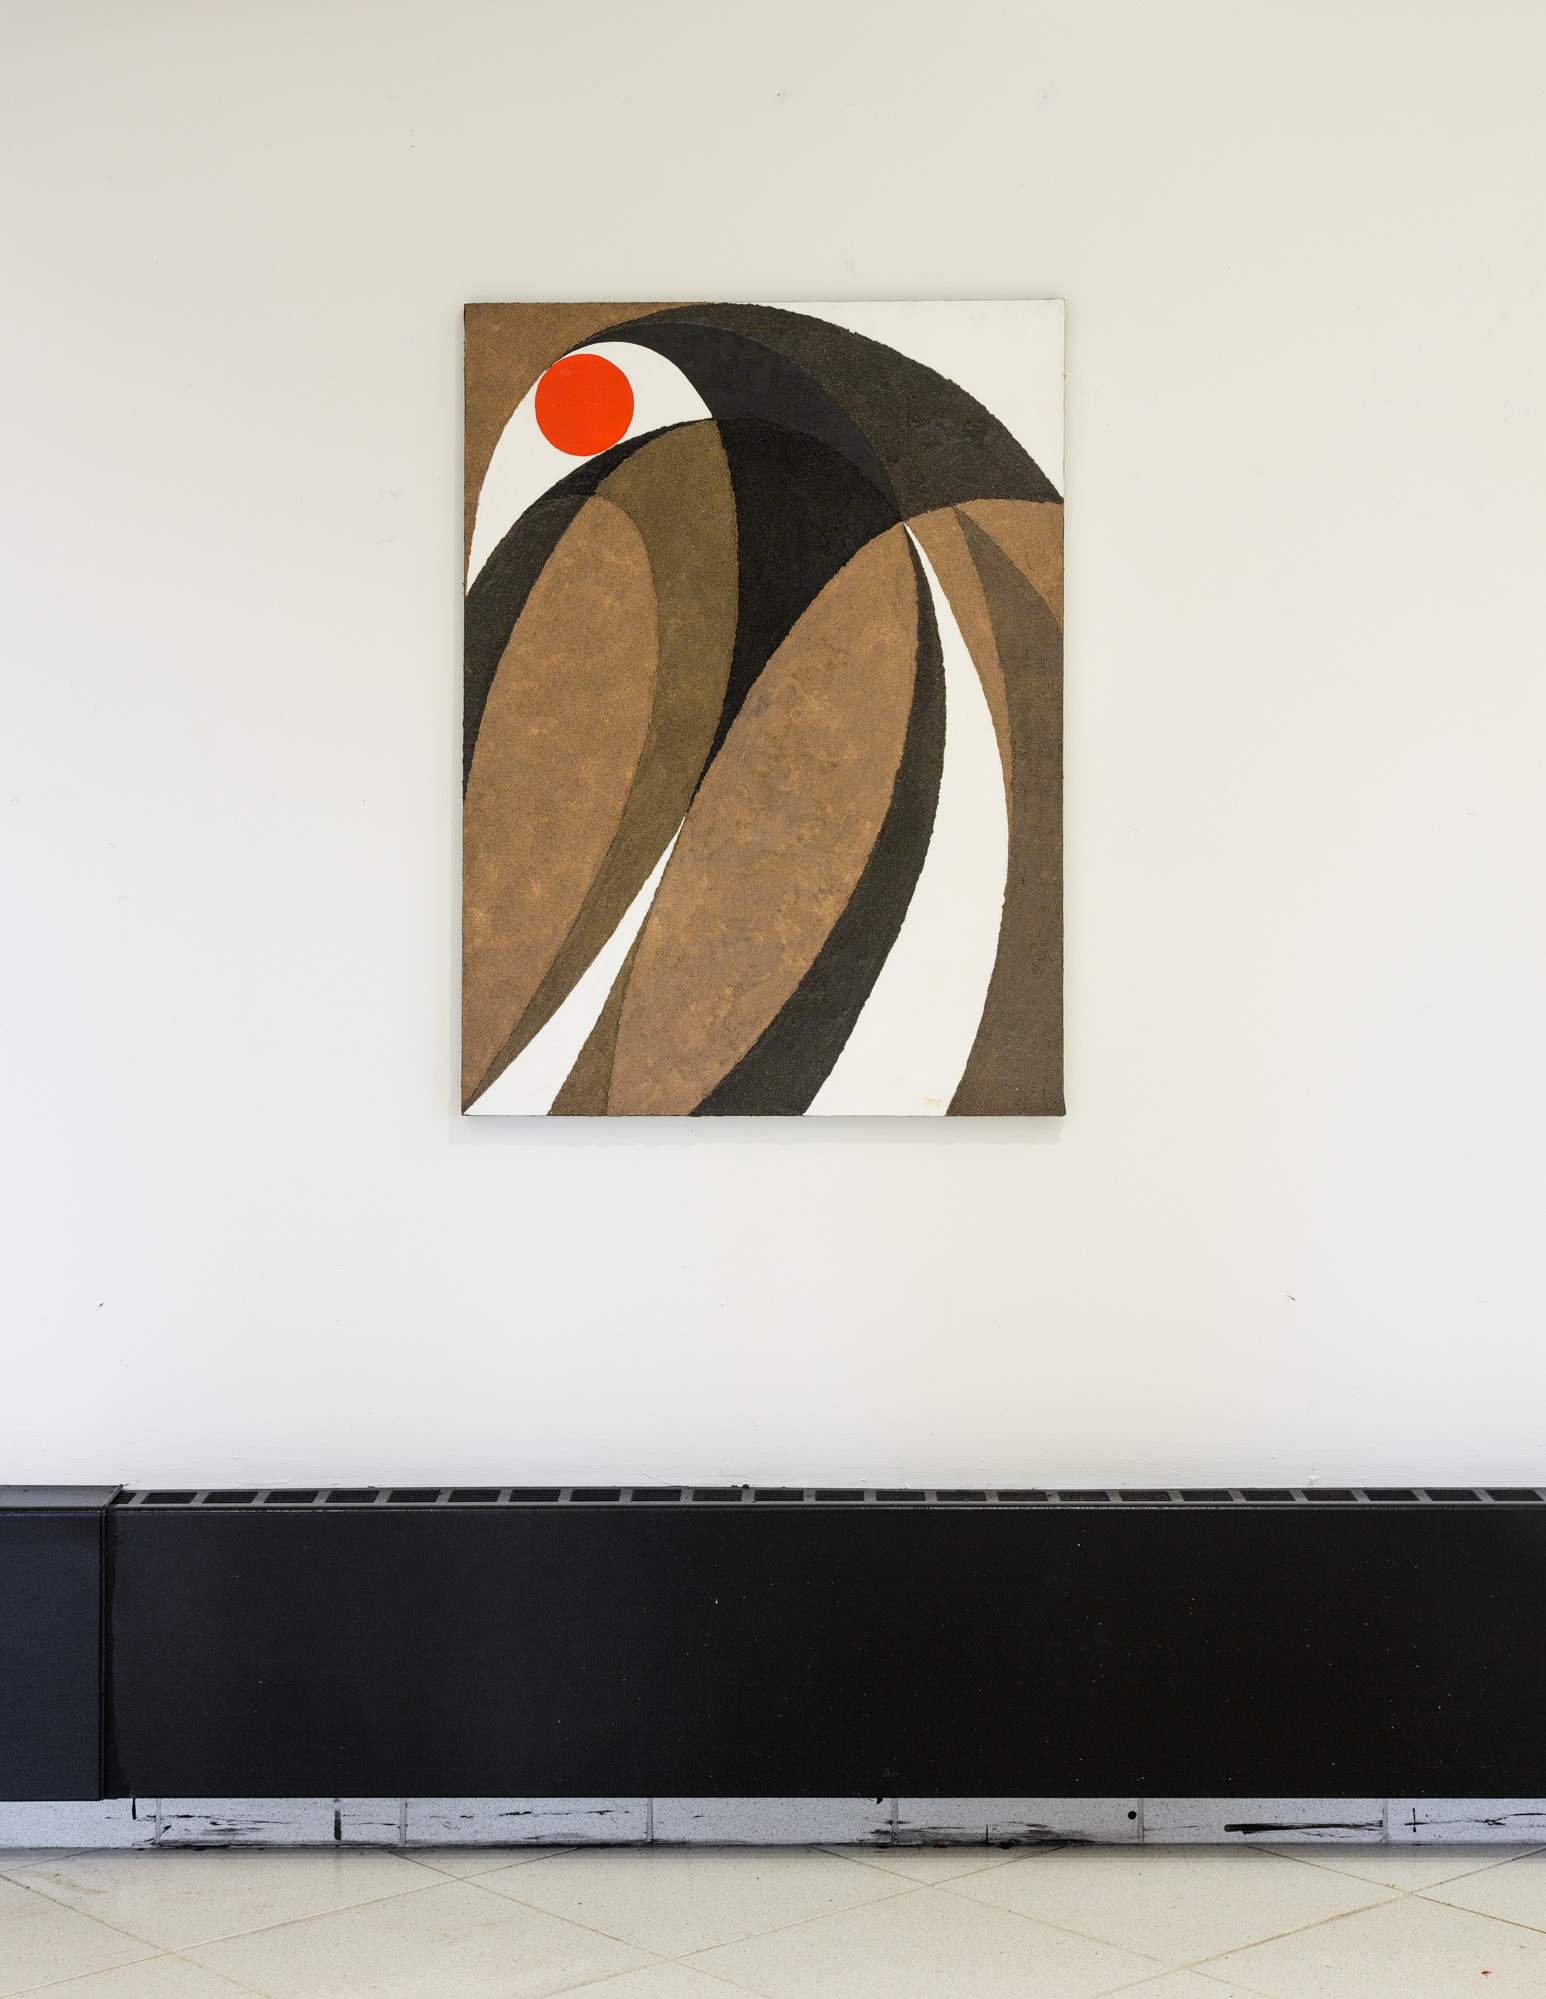 Fred Terna, A Focus on Fusion , 1982, Acrylic on canvas, 40 x 30 inches